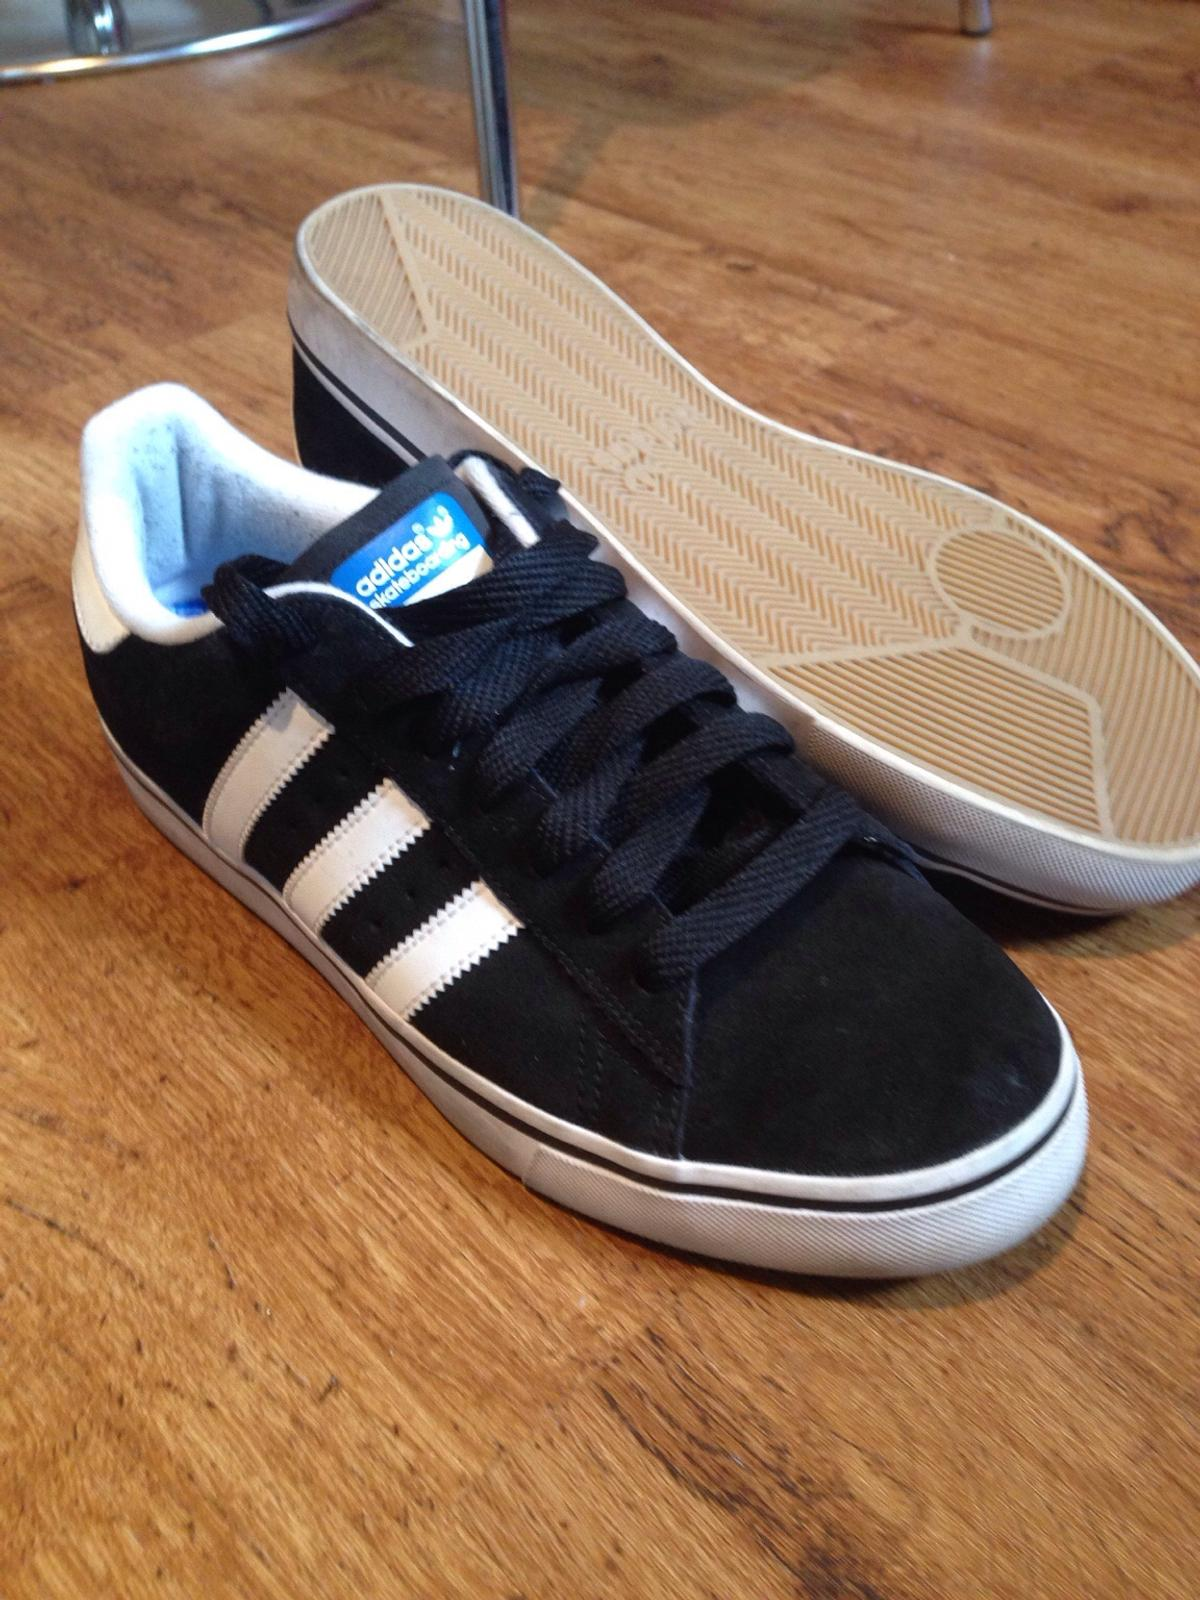 Hostil Controlar Adentro  Adidas Campus Vulc Skateboarding Trainers (8) in Stockport for £30.00 for  sale | Shpock